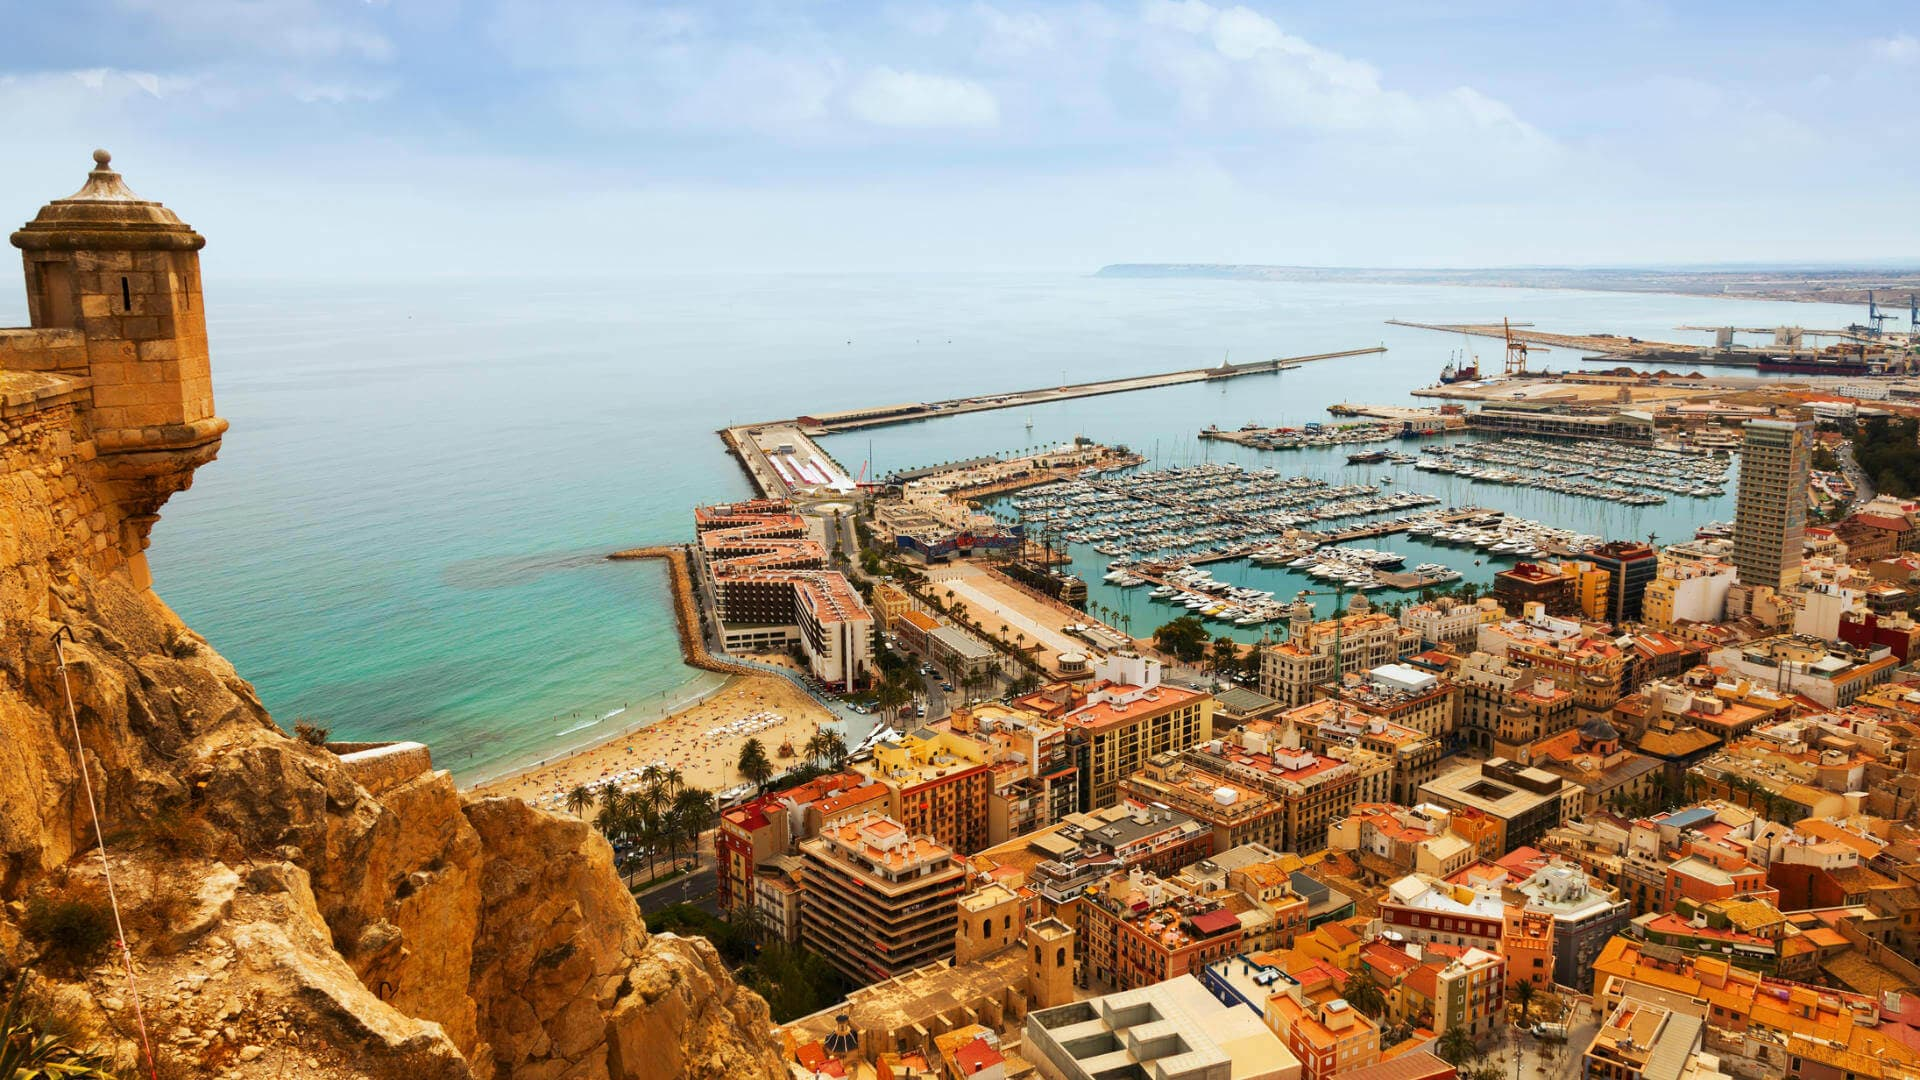 ALICANTE (From October)